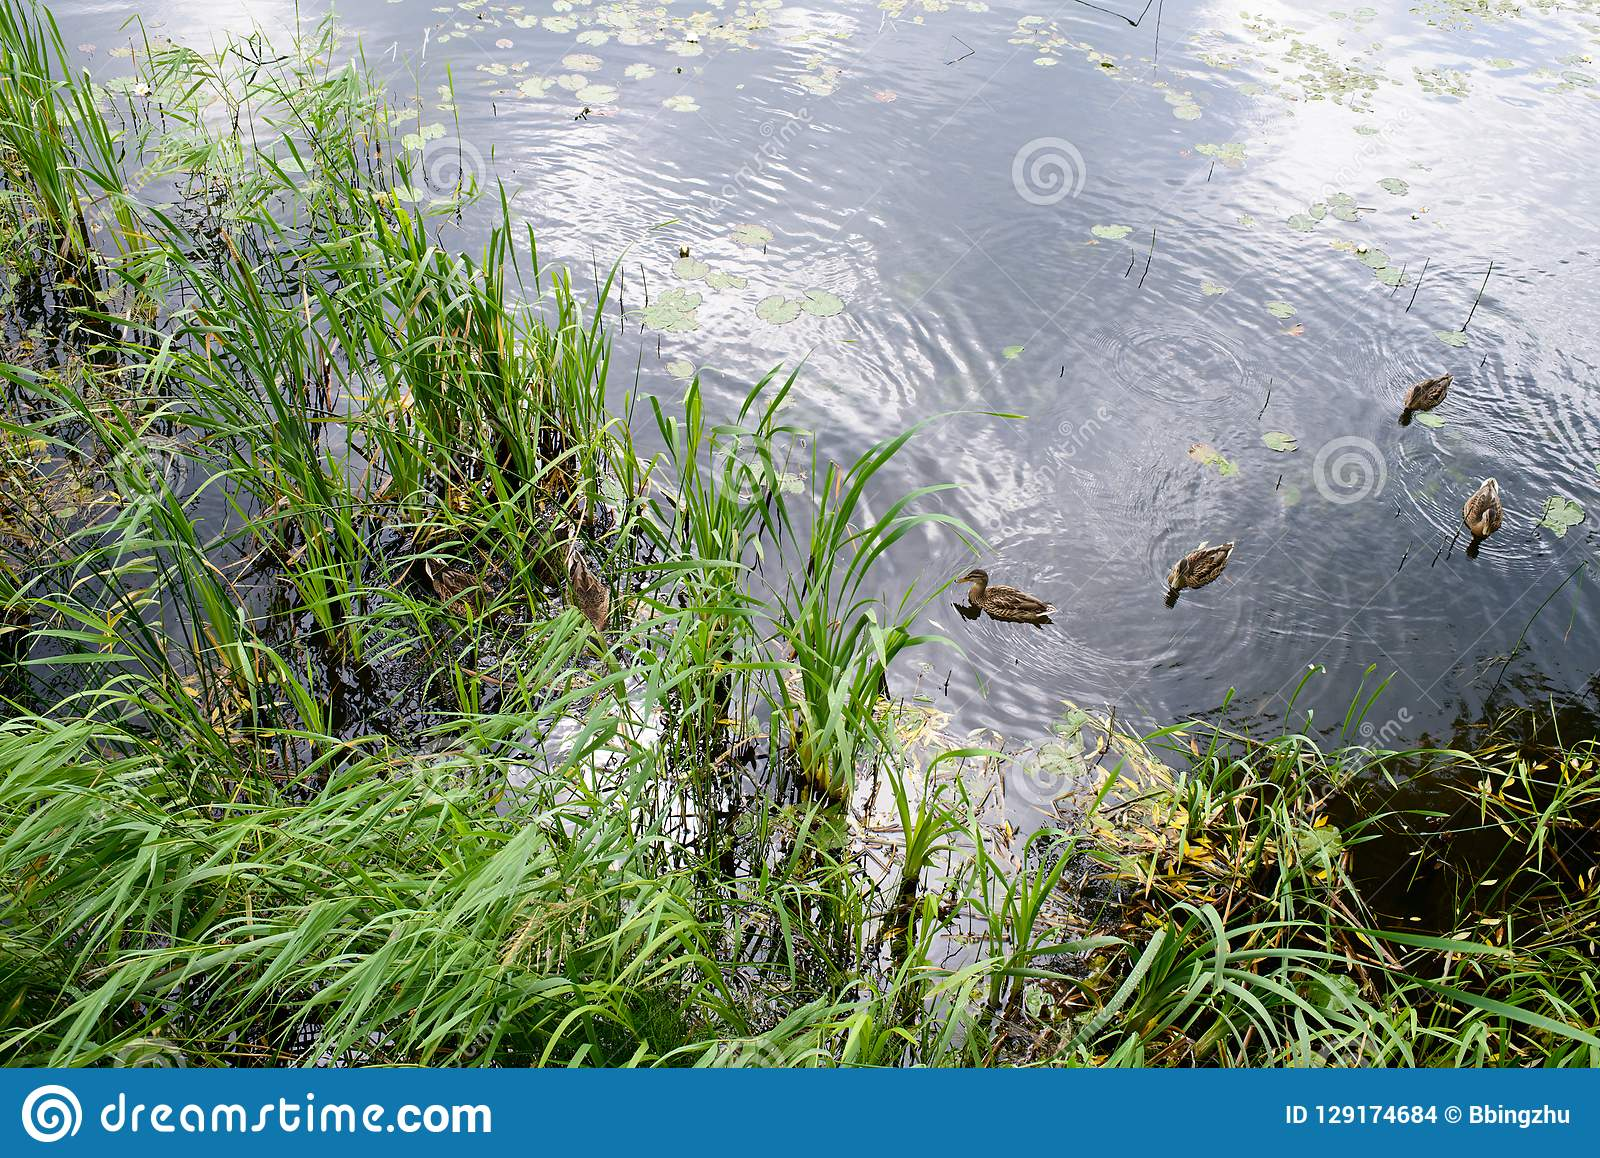 A group of green headed ducks